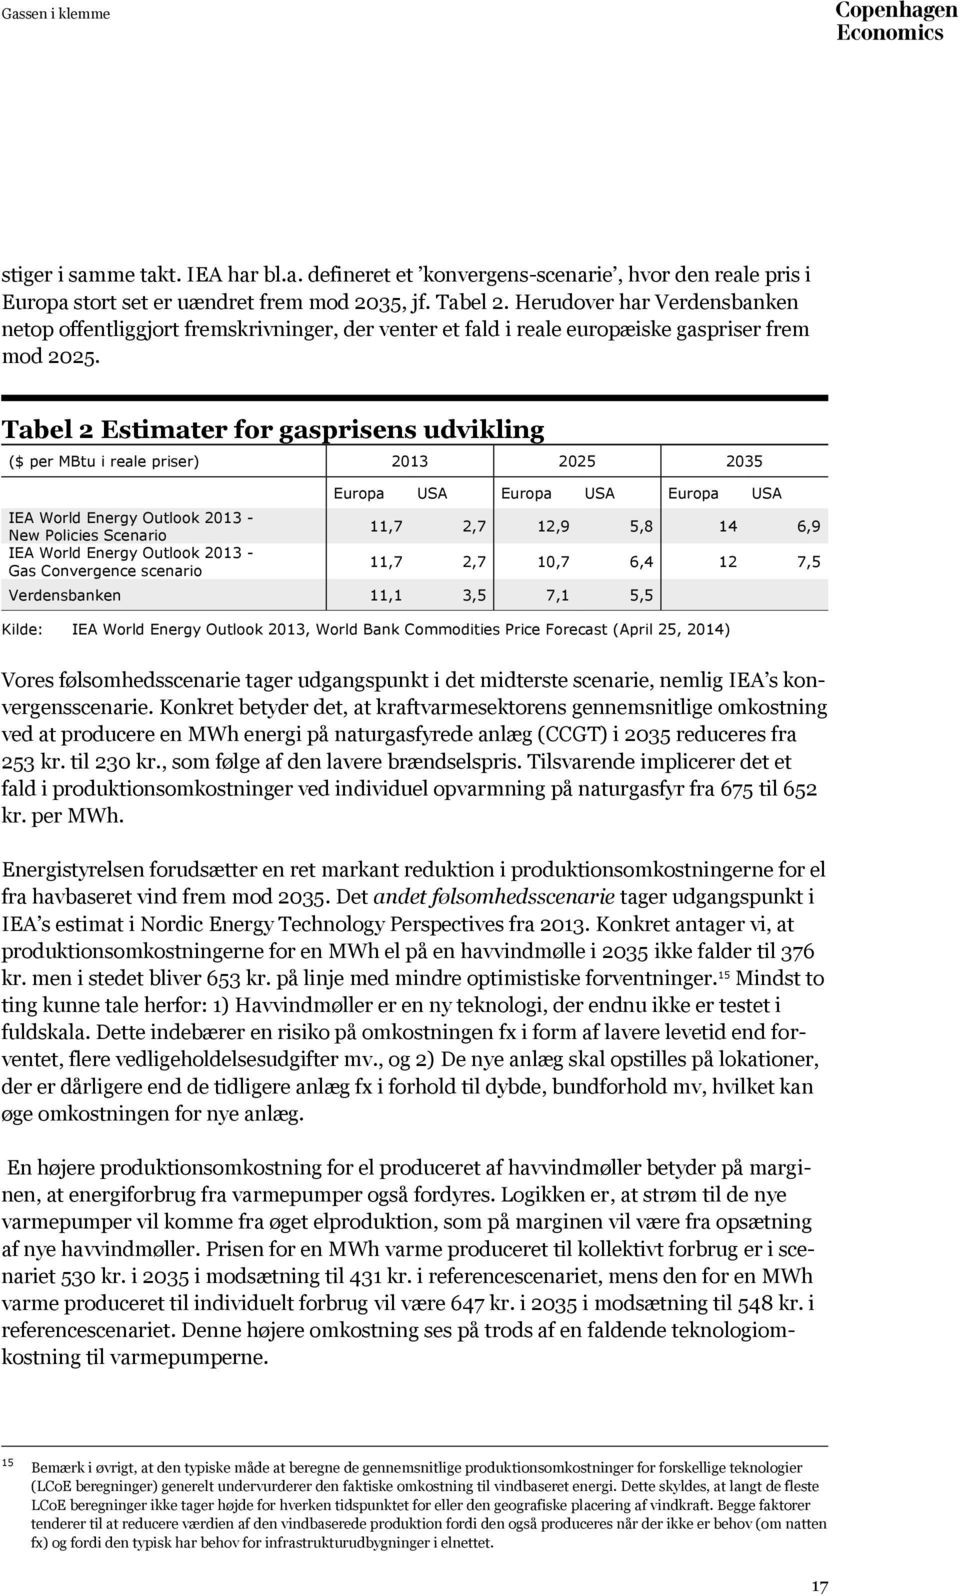 Tabel 2 Estimater for gasprisens udvikling ($ per MBtu i reale priser) 2013 2025 2035 IEA World Energy Outlook 2013 - New Policies Scenario IEA World Energy Outlook 2013 - Gas Convergence scenario